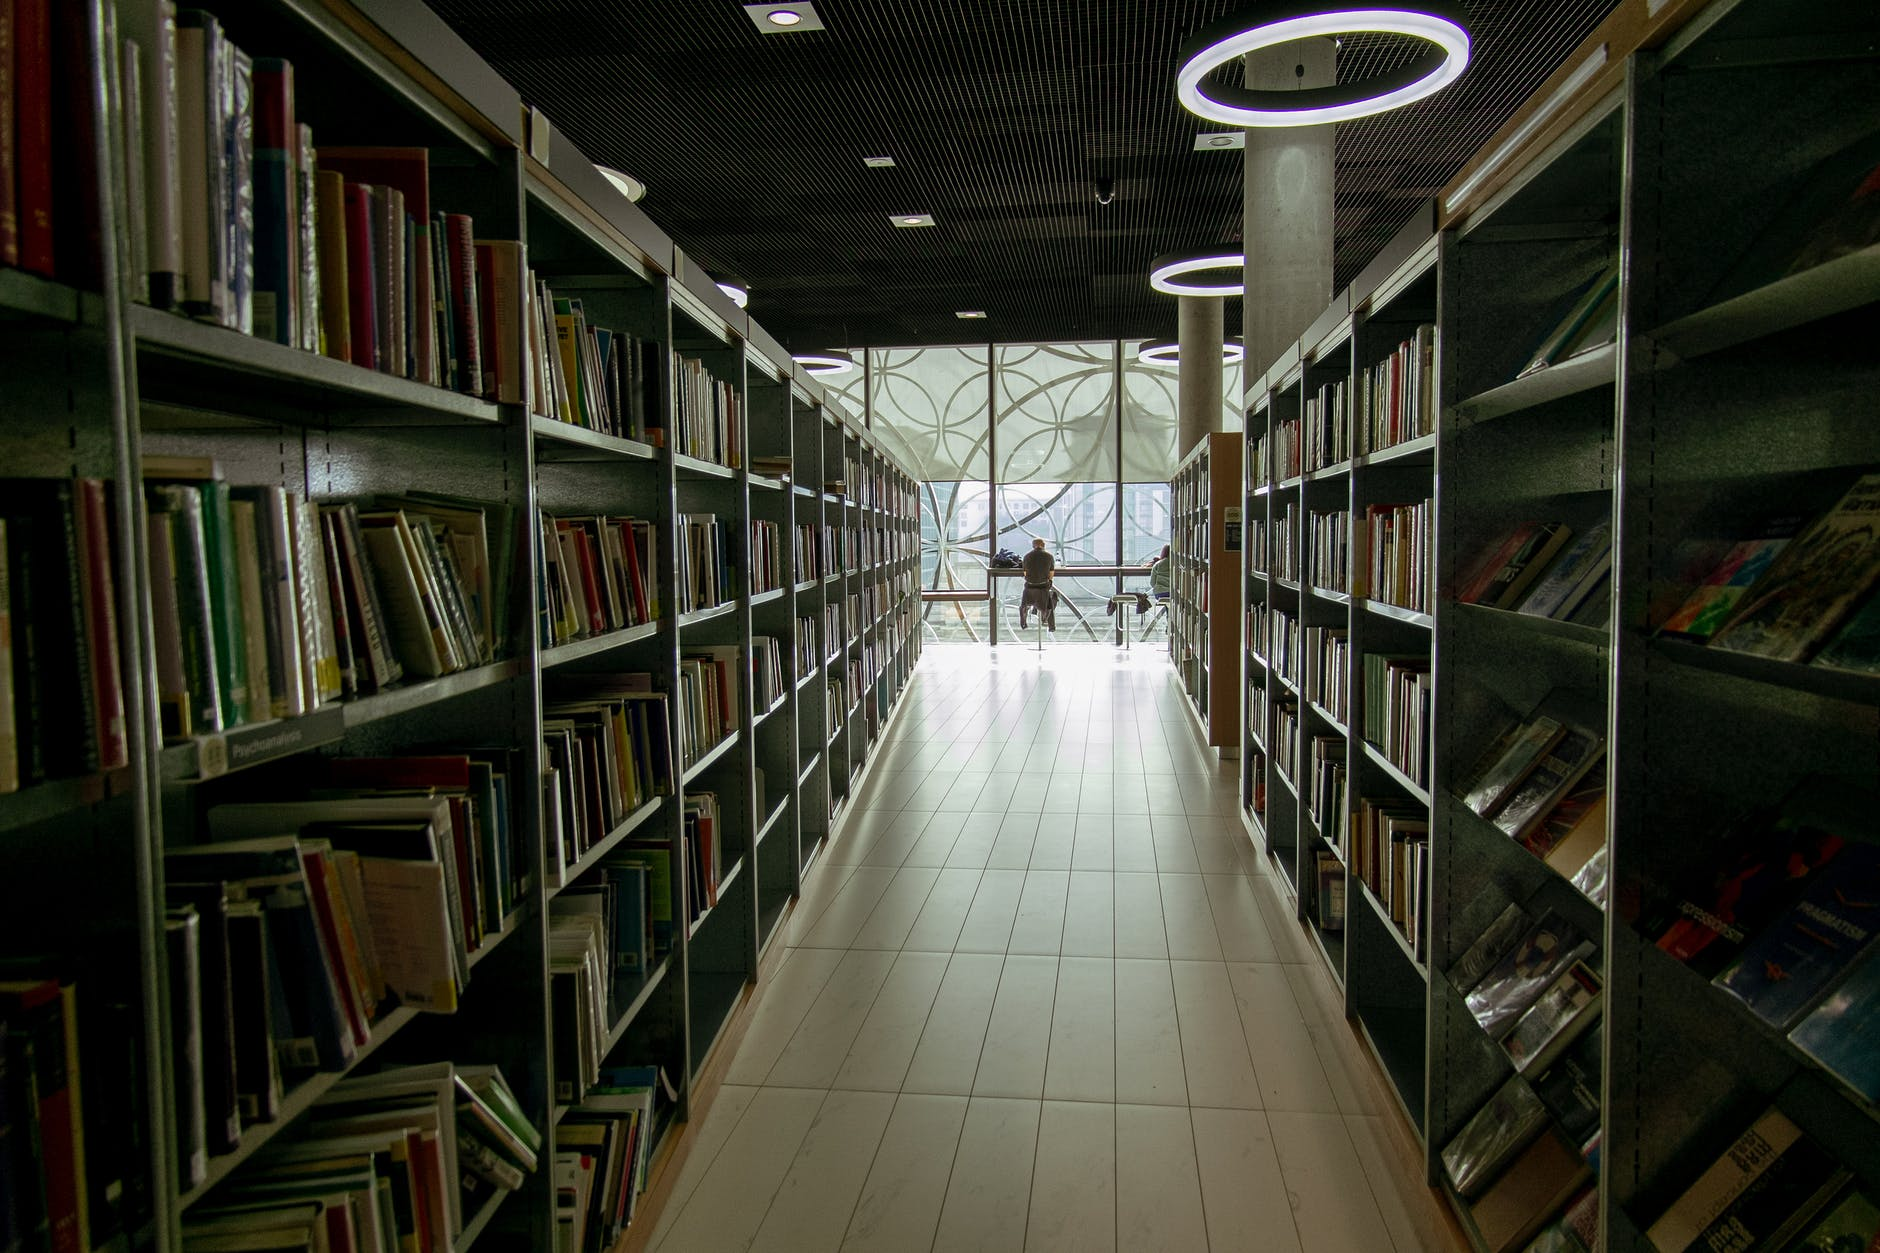 Book shelving / stacks in a library.